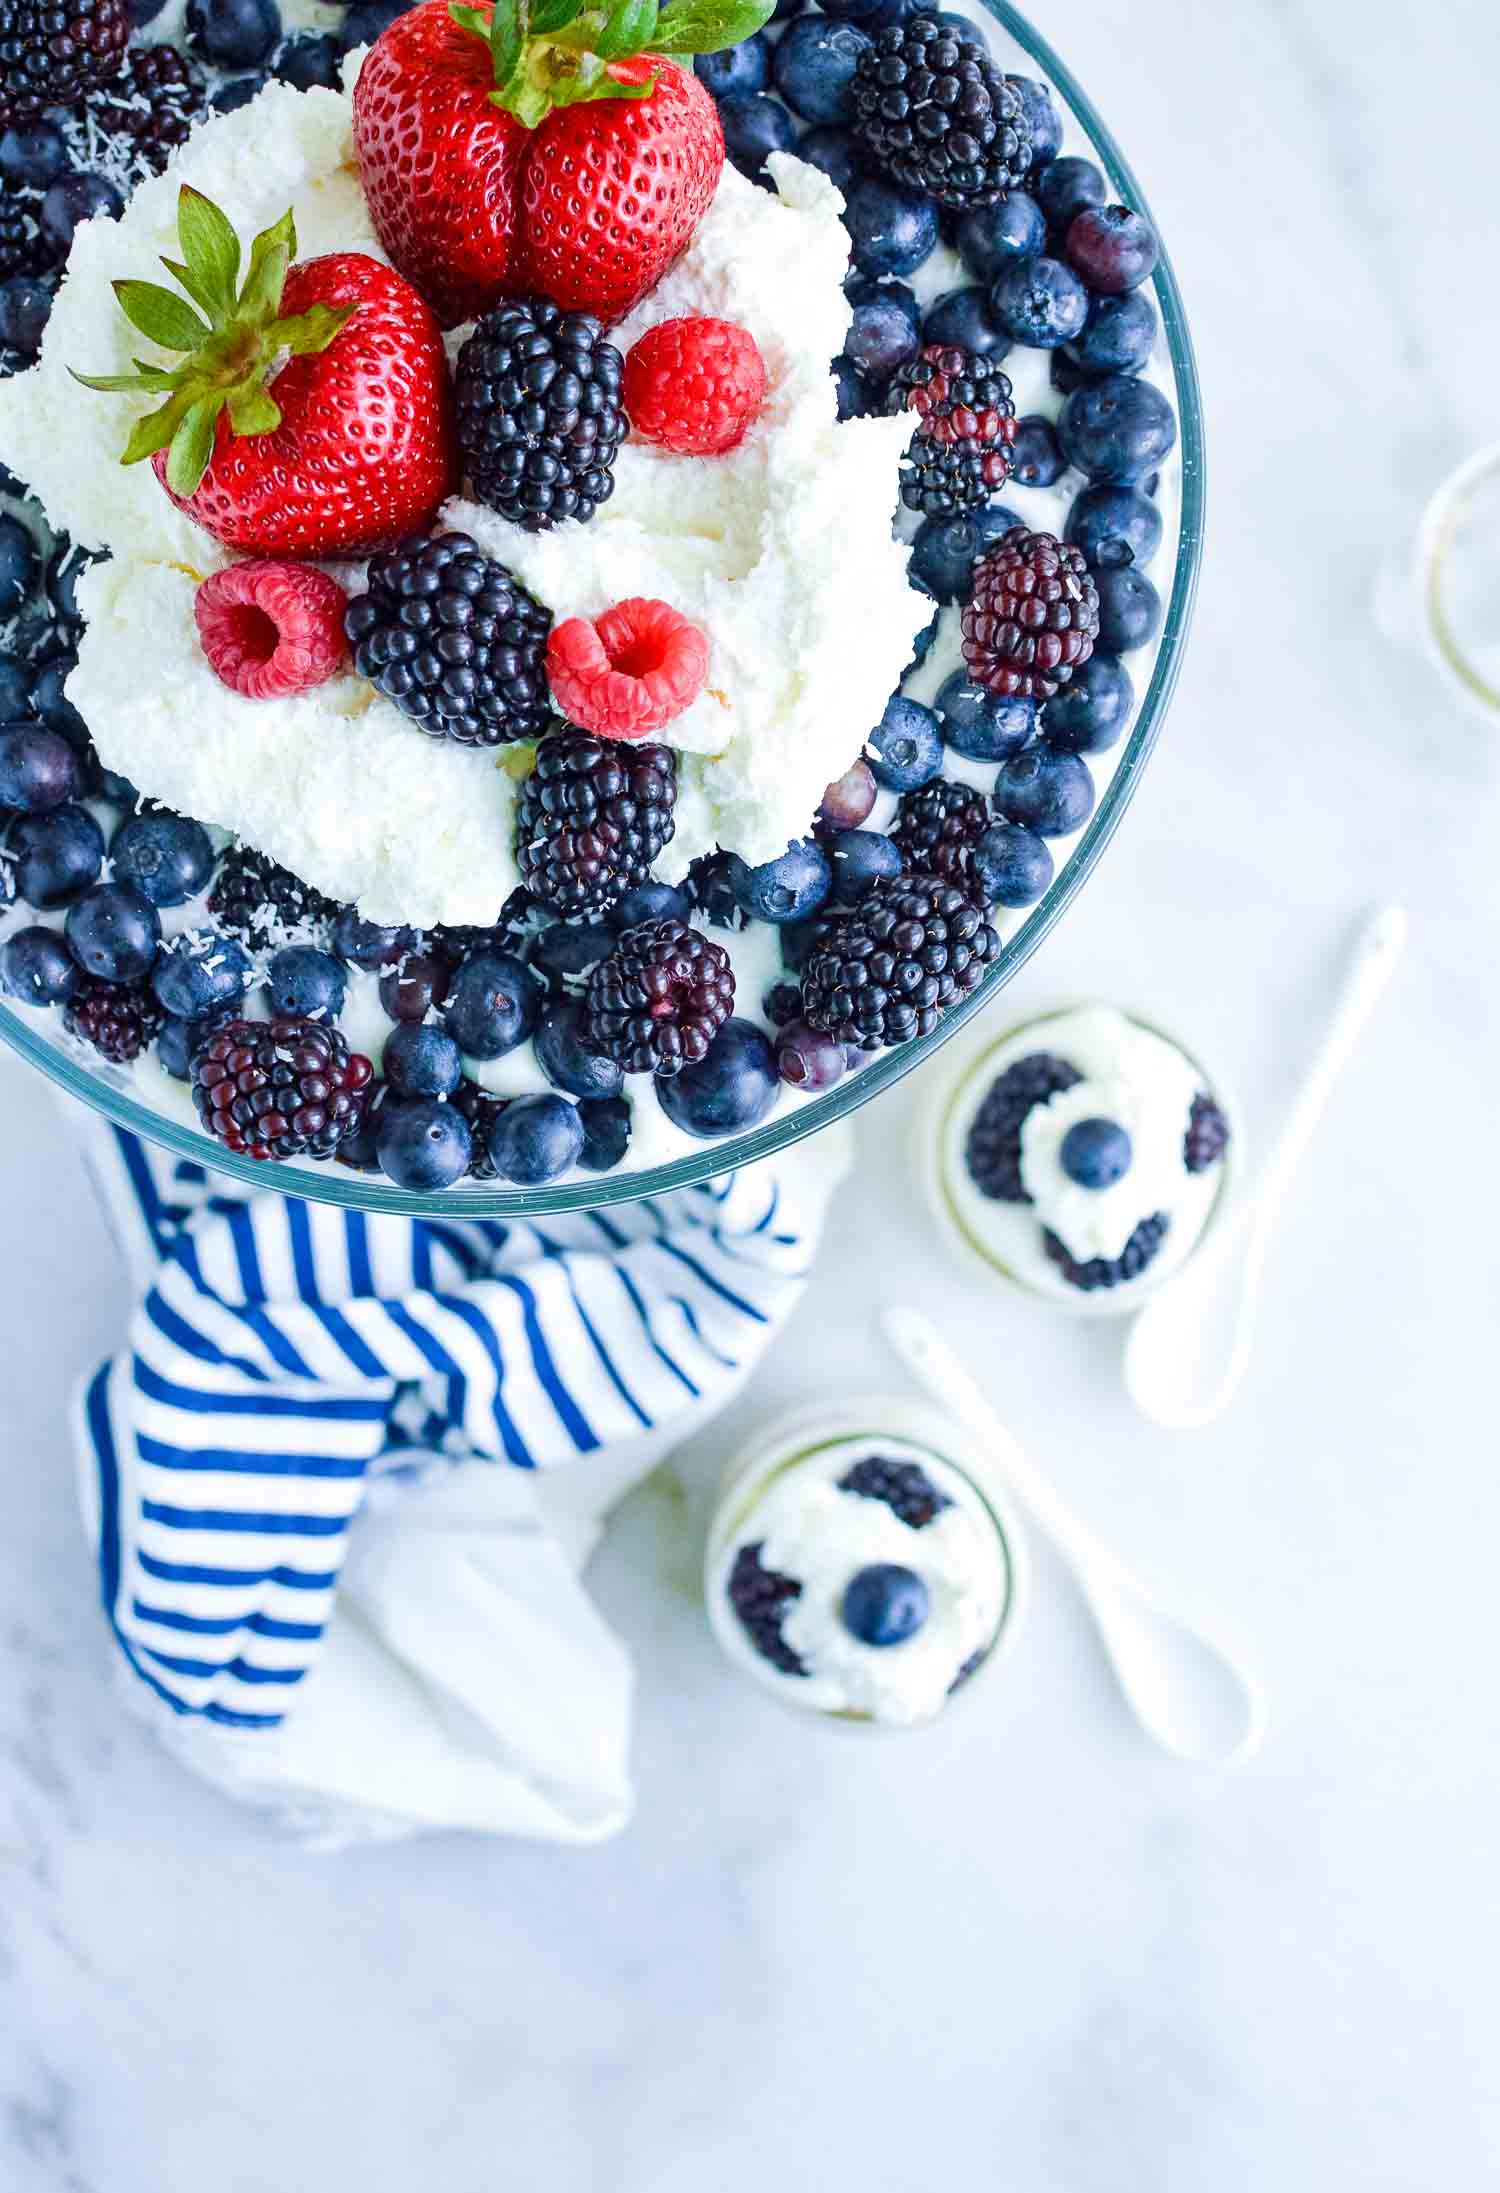 A top look of a clear glass dish filled with cake, berries, and cream with a blue and white towel around the bottom with individual servings in glass cups and white spoons.